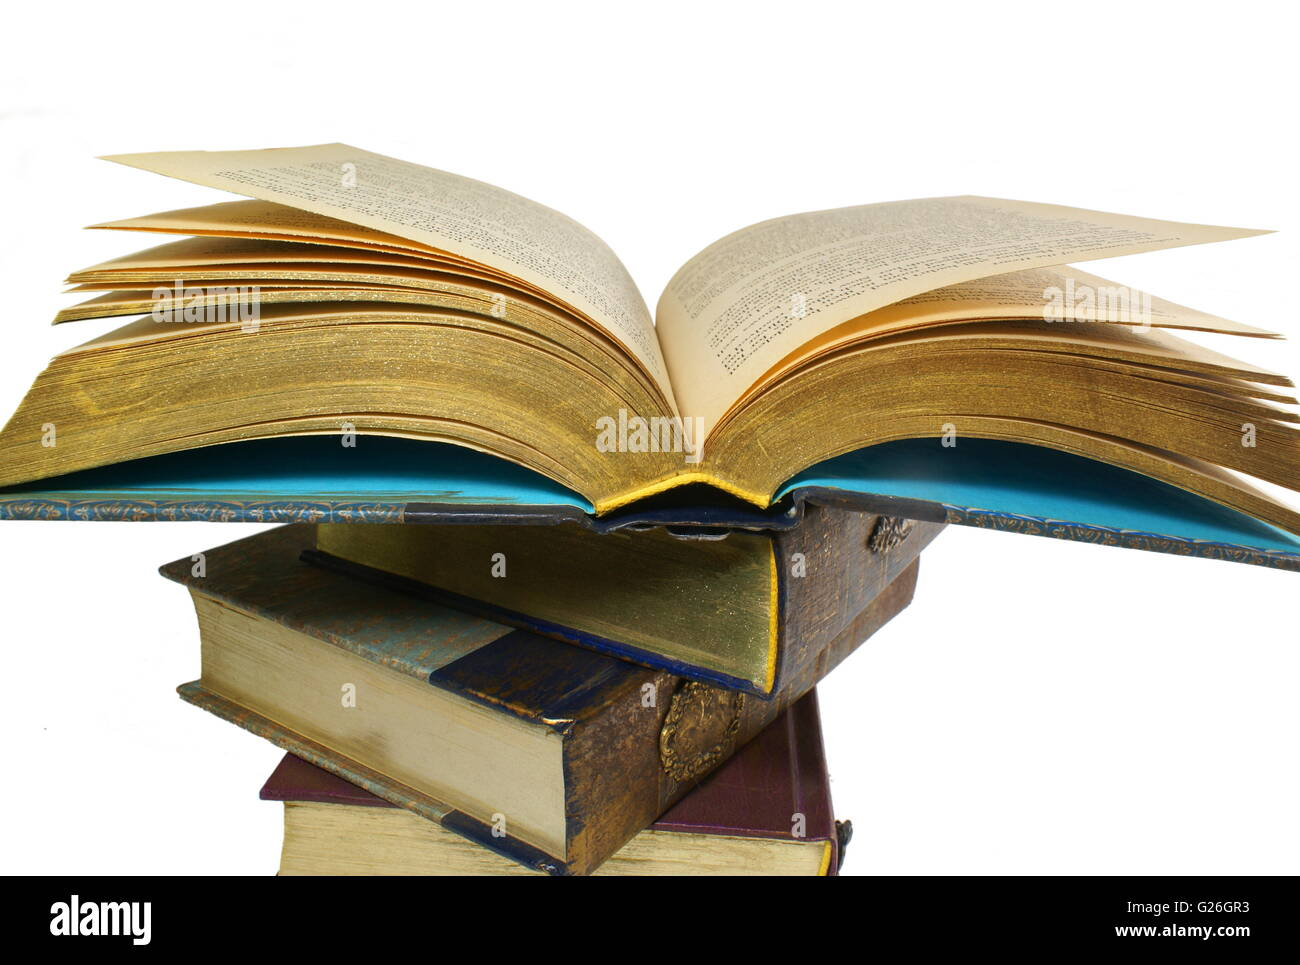 vertically stacked books stock photos vertically stacked books